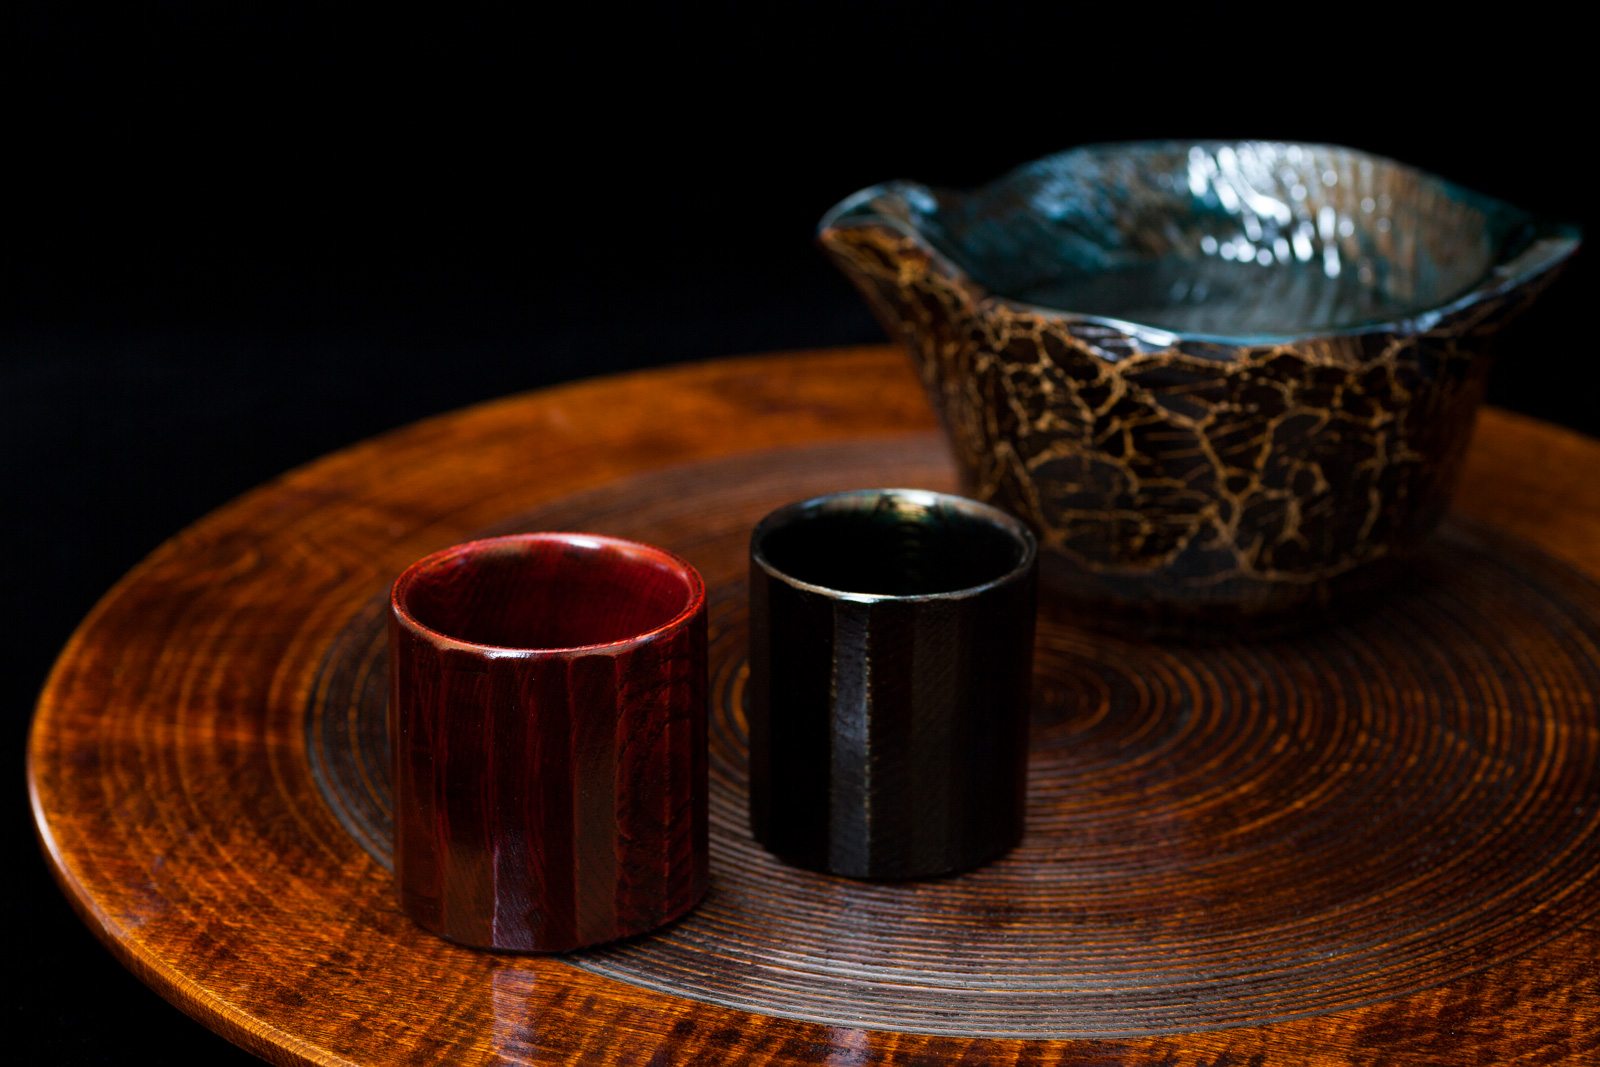 Lacquered Wood Sake Cup Set (2 Cups + 1 Serving Flask)